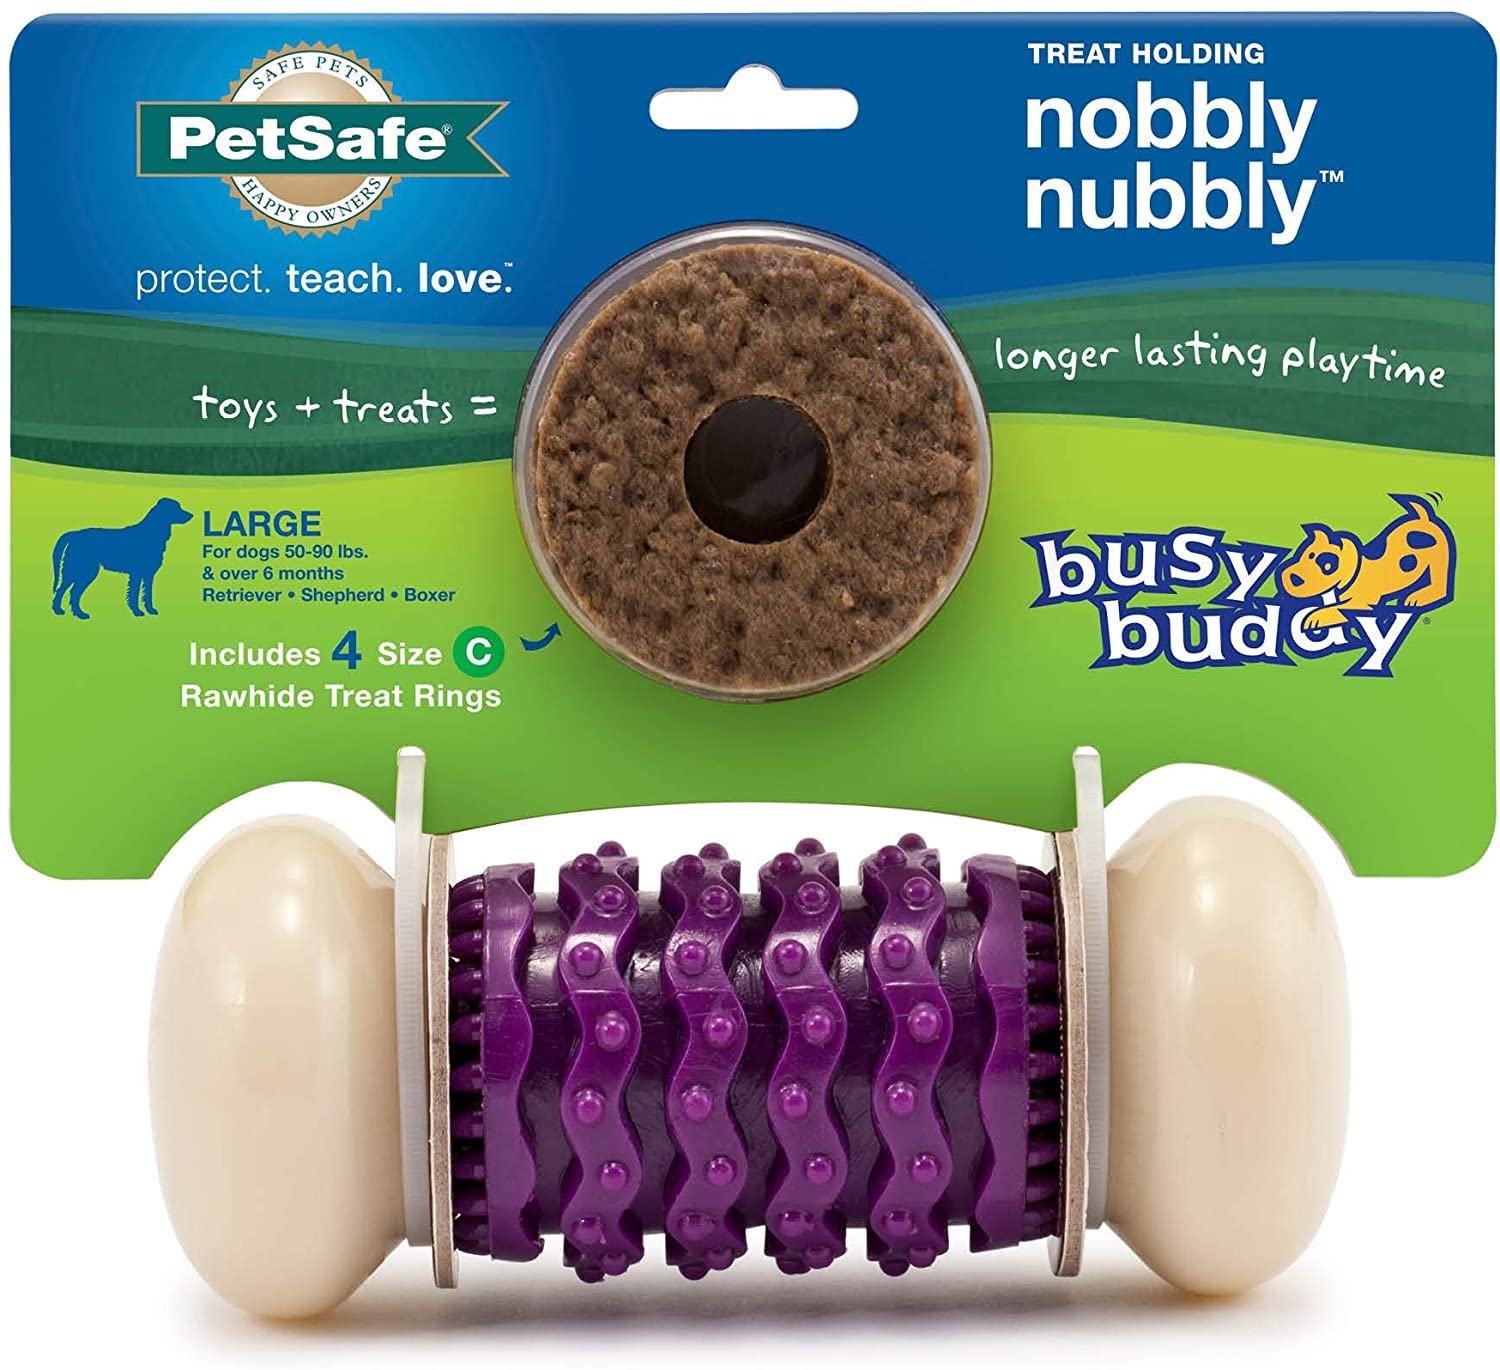 PetSafe Busy Buddy Nobbly Nubbly Treat Holding Dog Toy – Strong Chewers – Extra Small, Small, Medium, Large